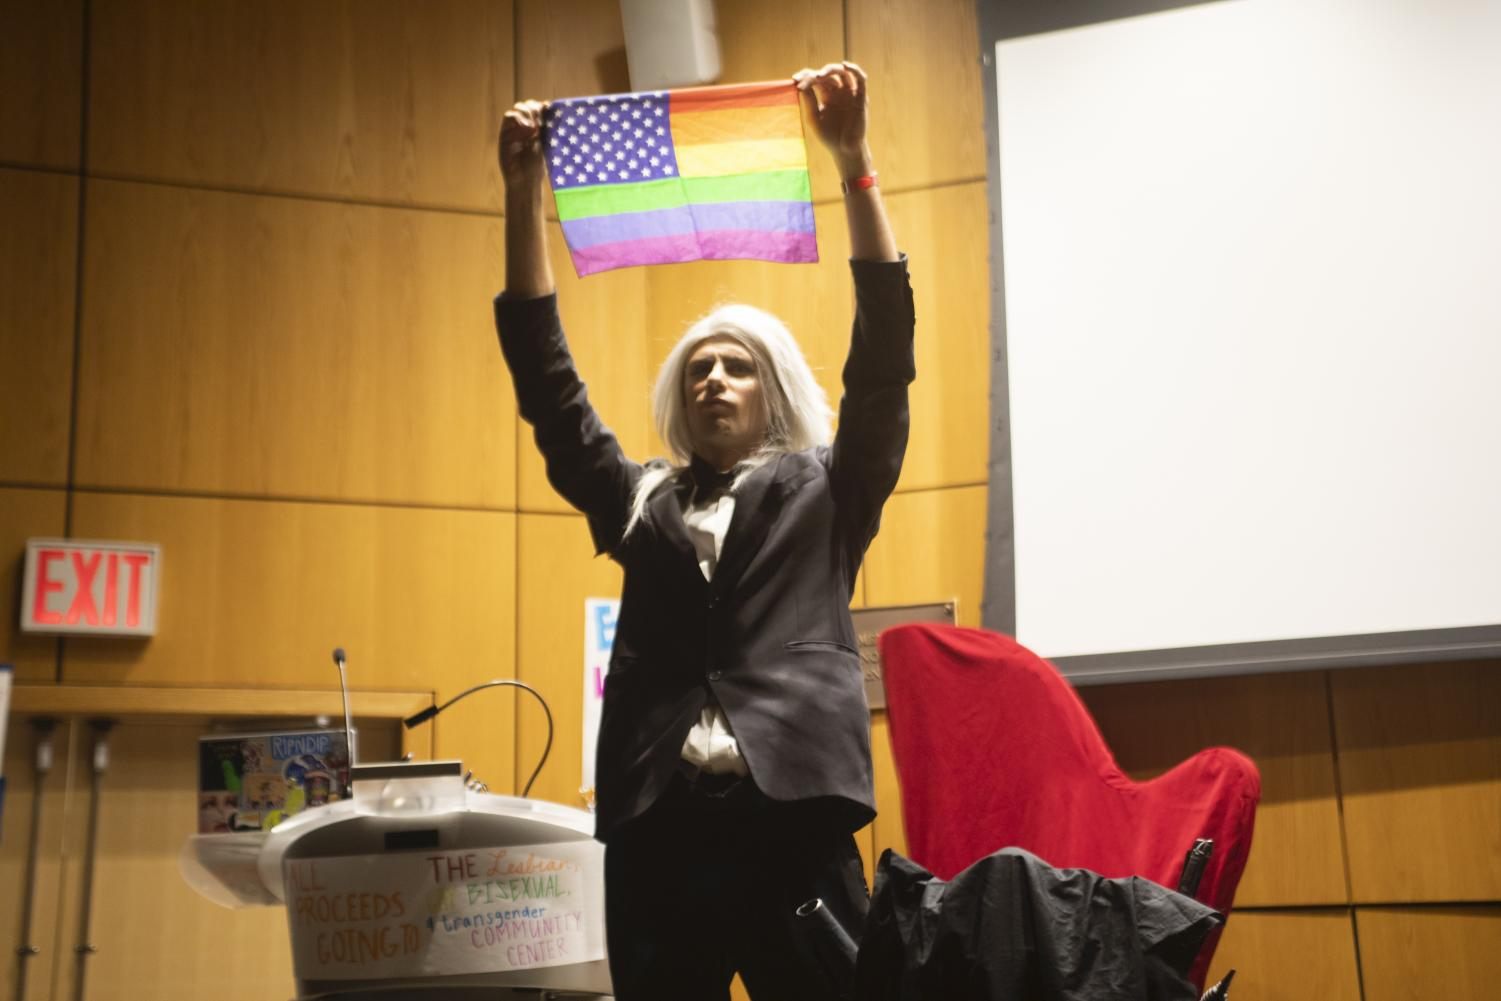 Fordham's drag kings and queens performed a variety of energetic arts including magic, rock music and a death drop.